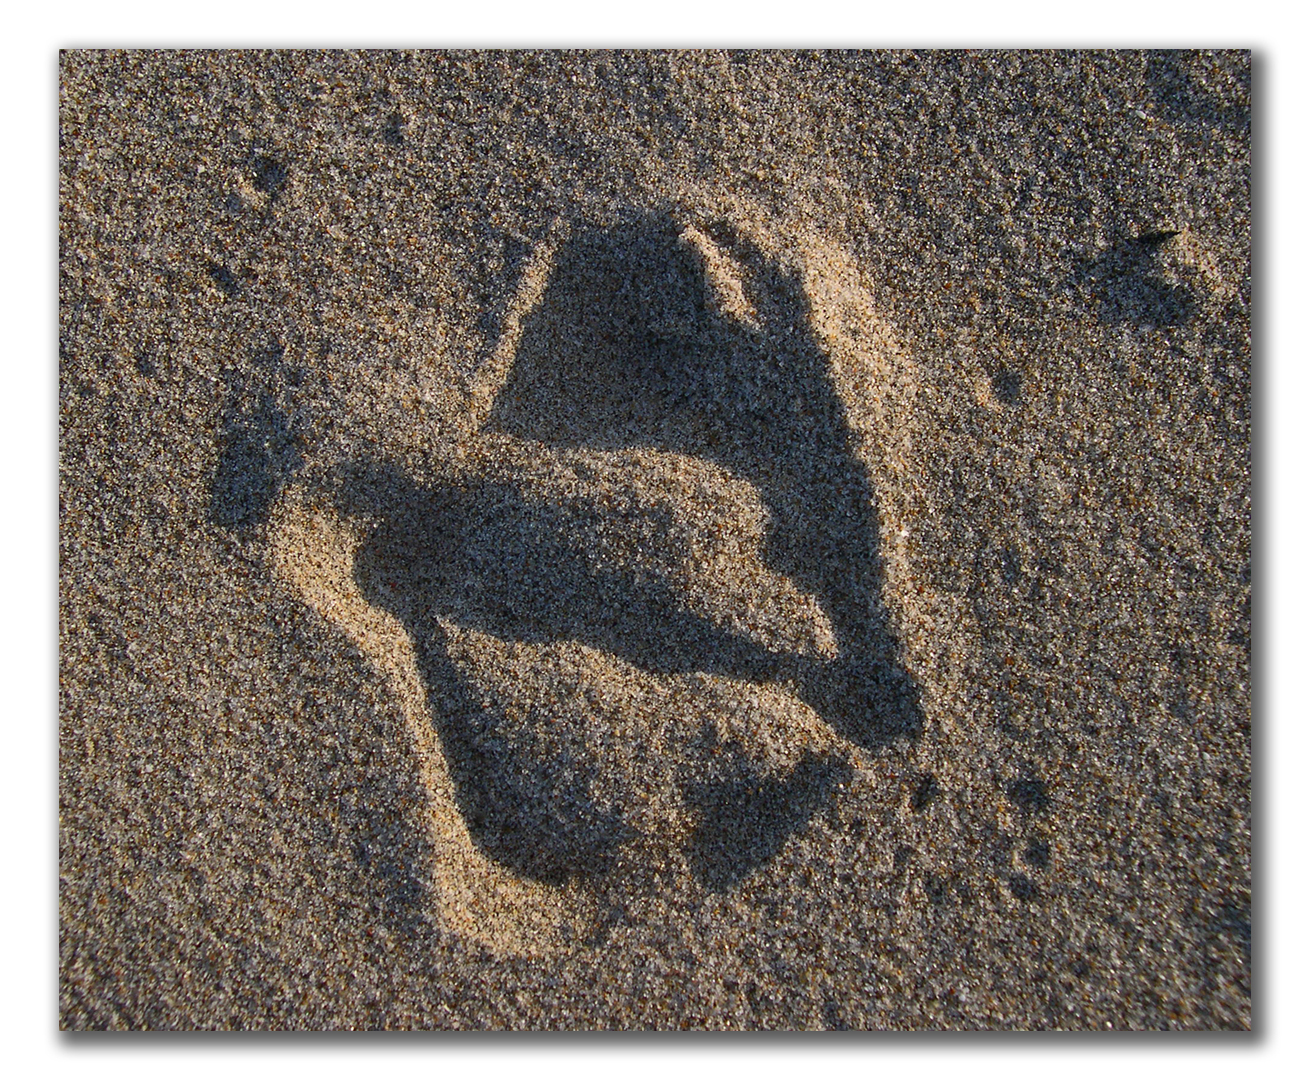 pelican footprint in sand